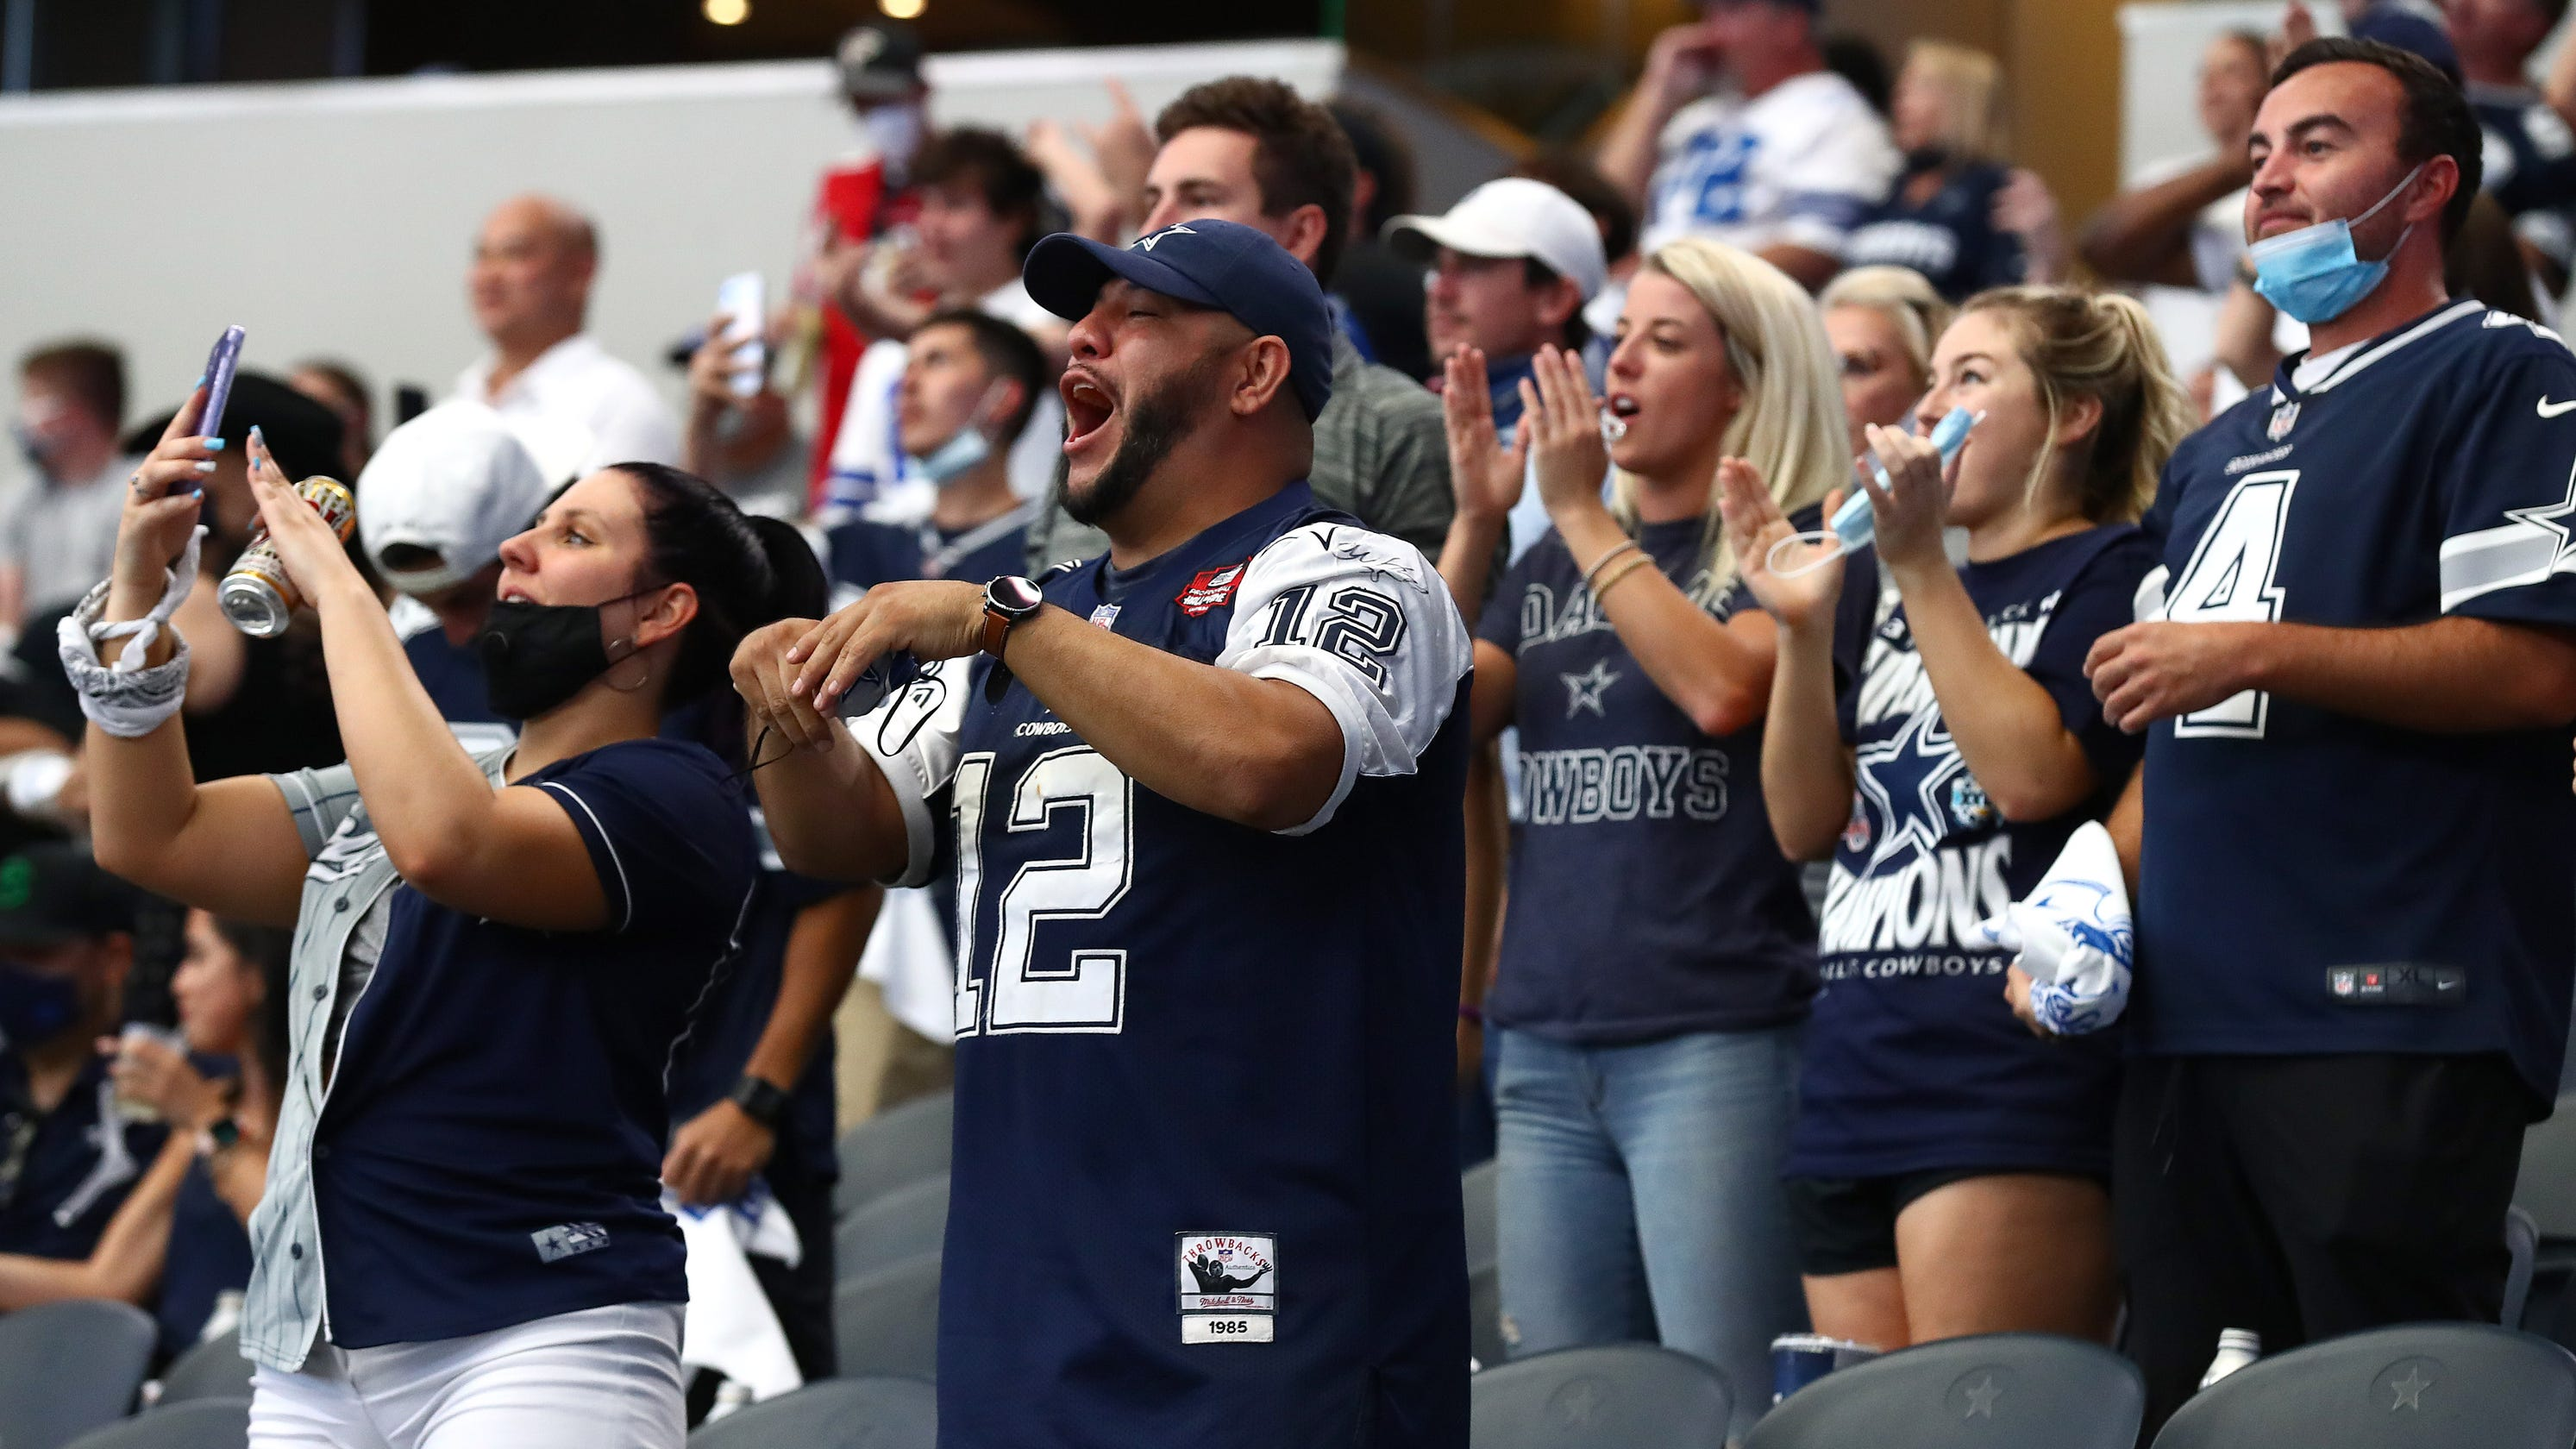 'It really makes me anxious': Cowboys could have more than 30,000 fans at Thanksgiving game